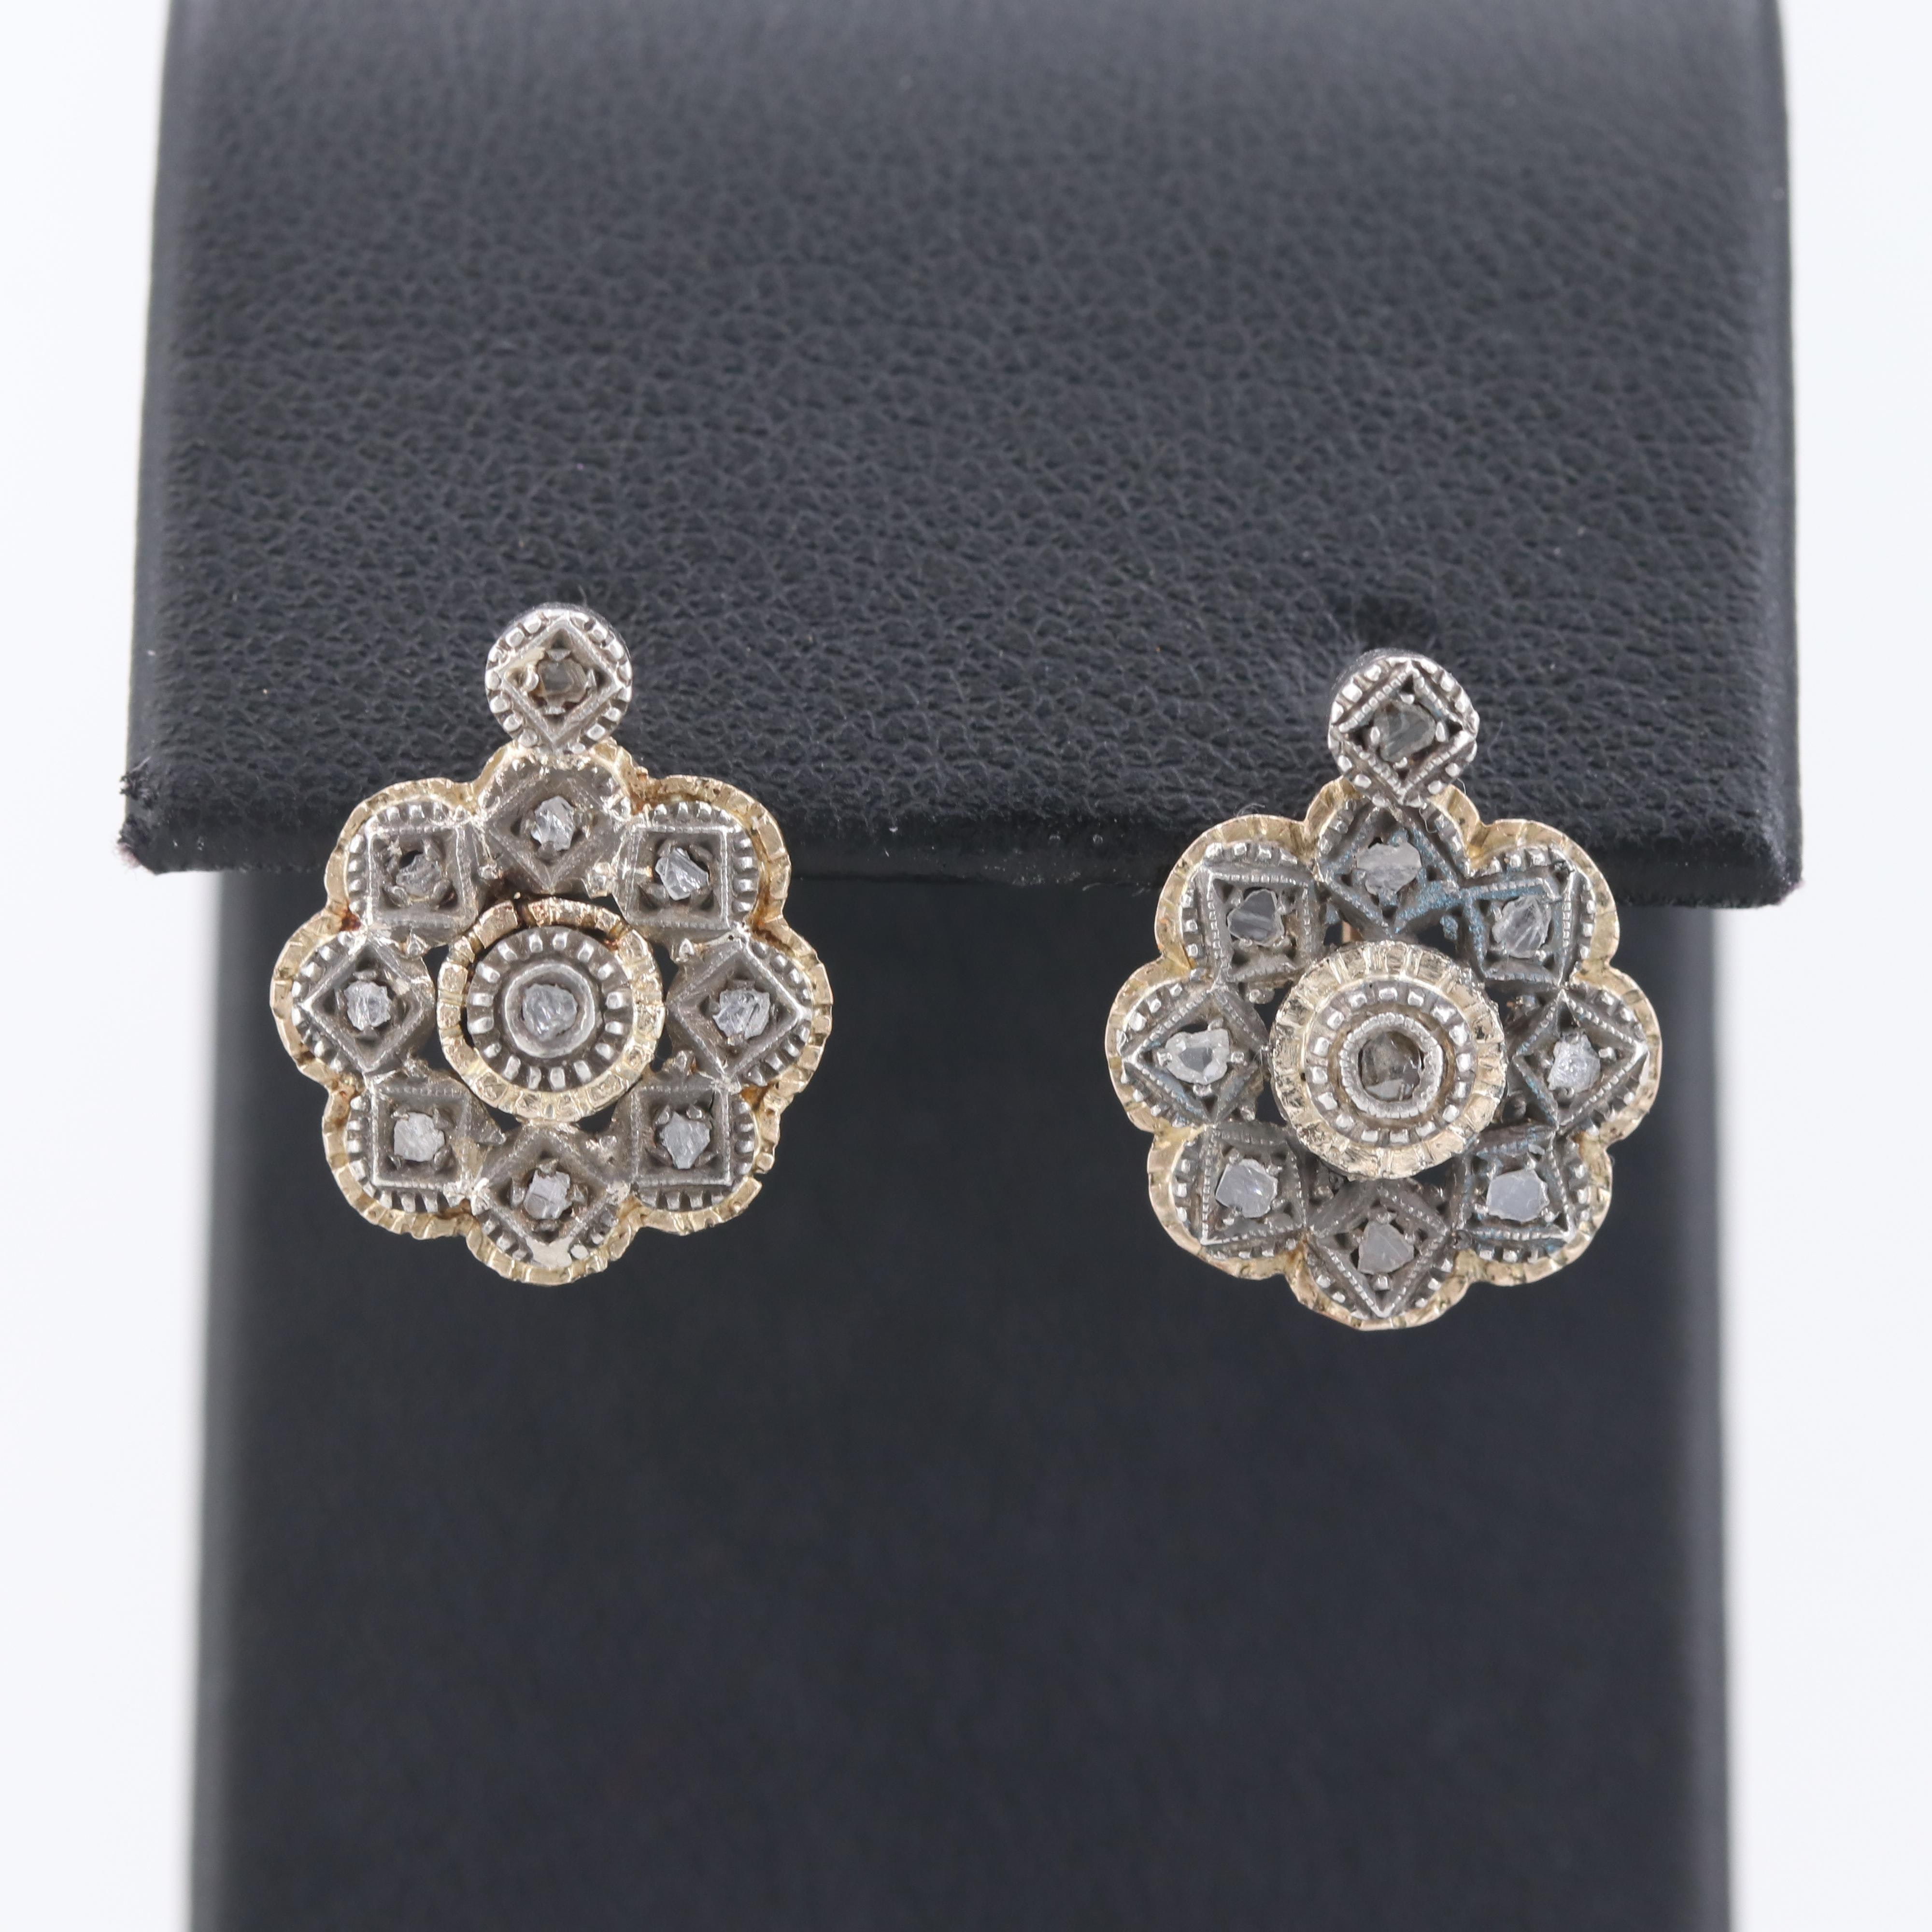 Antique Portuguese 18K Yellow Gold Diamond Earrings with Sterling Silver Accents